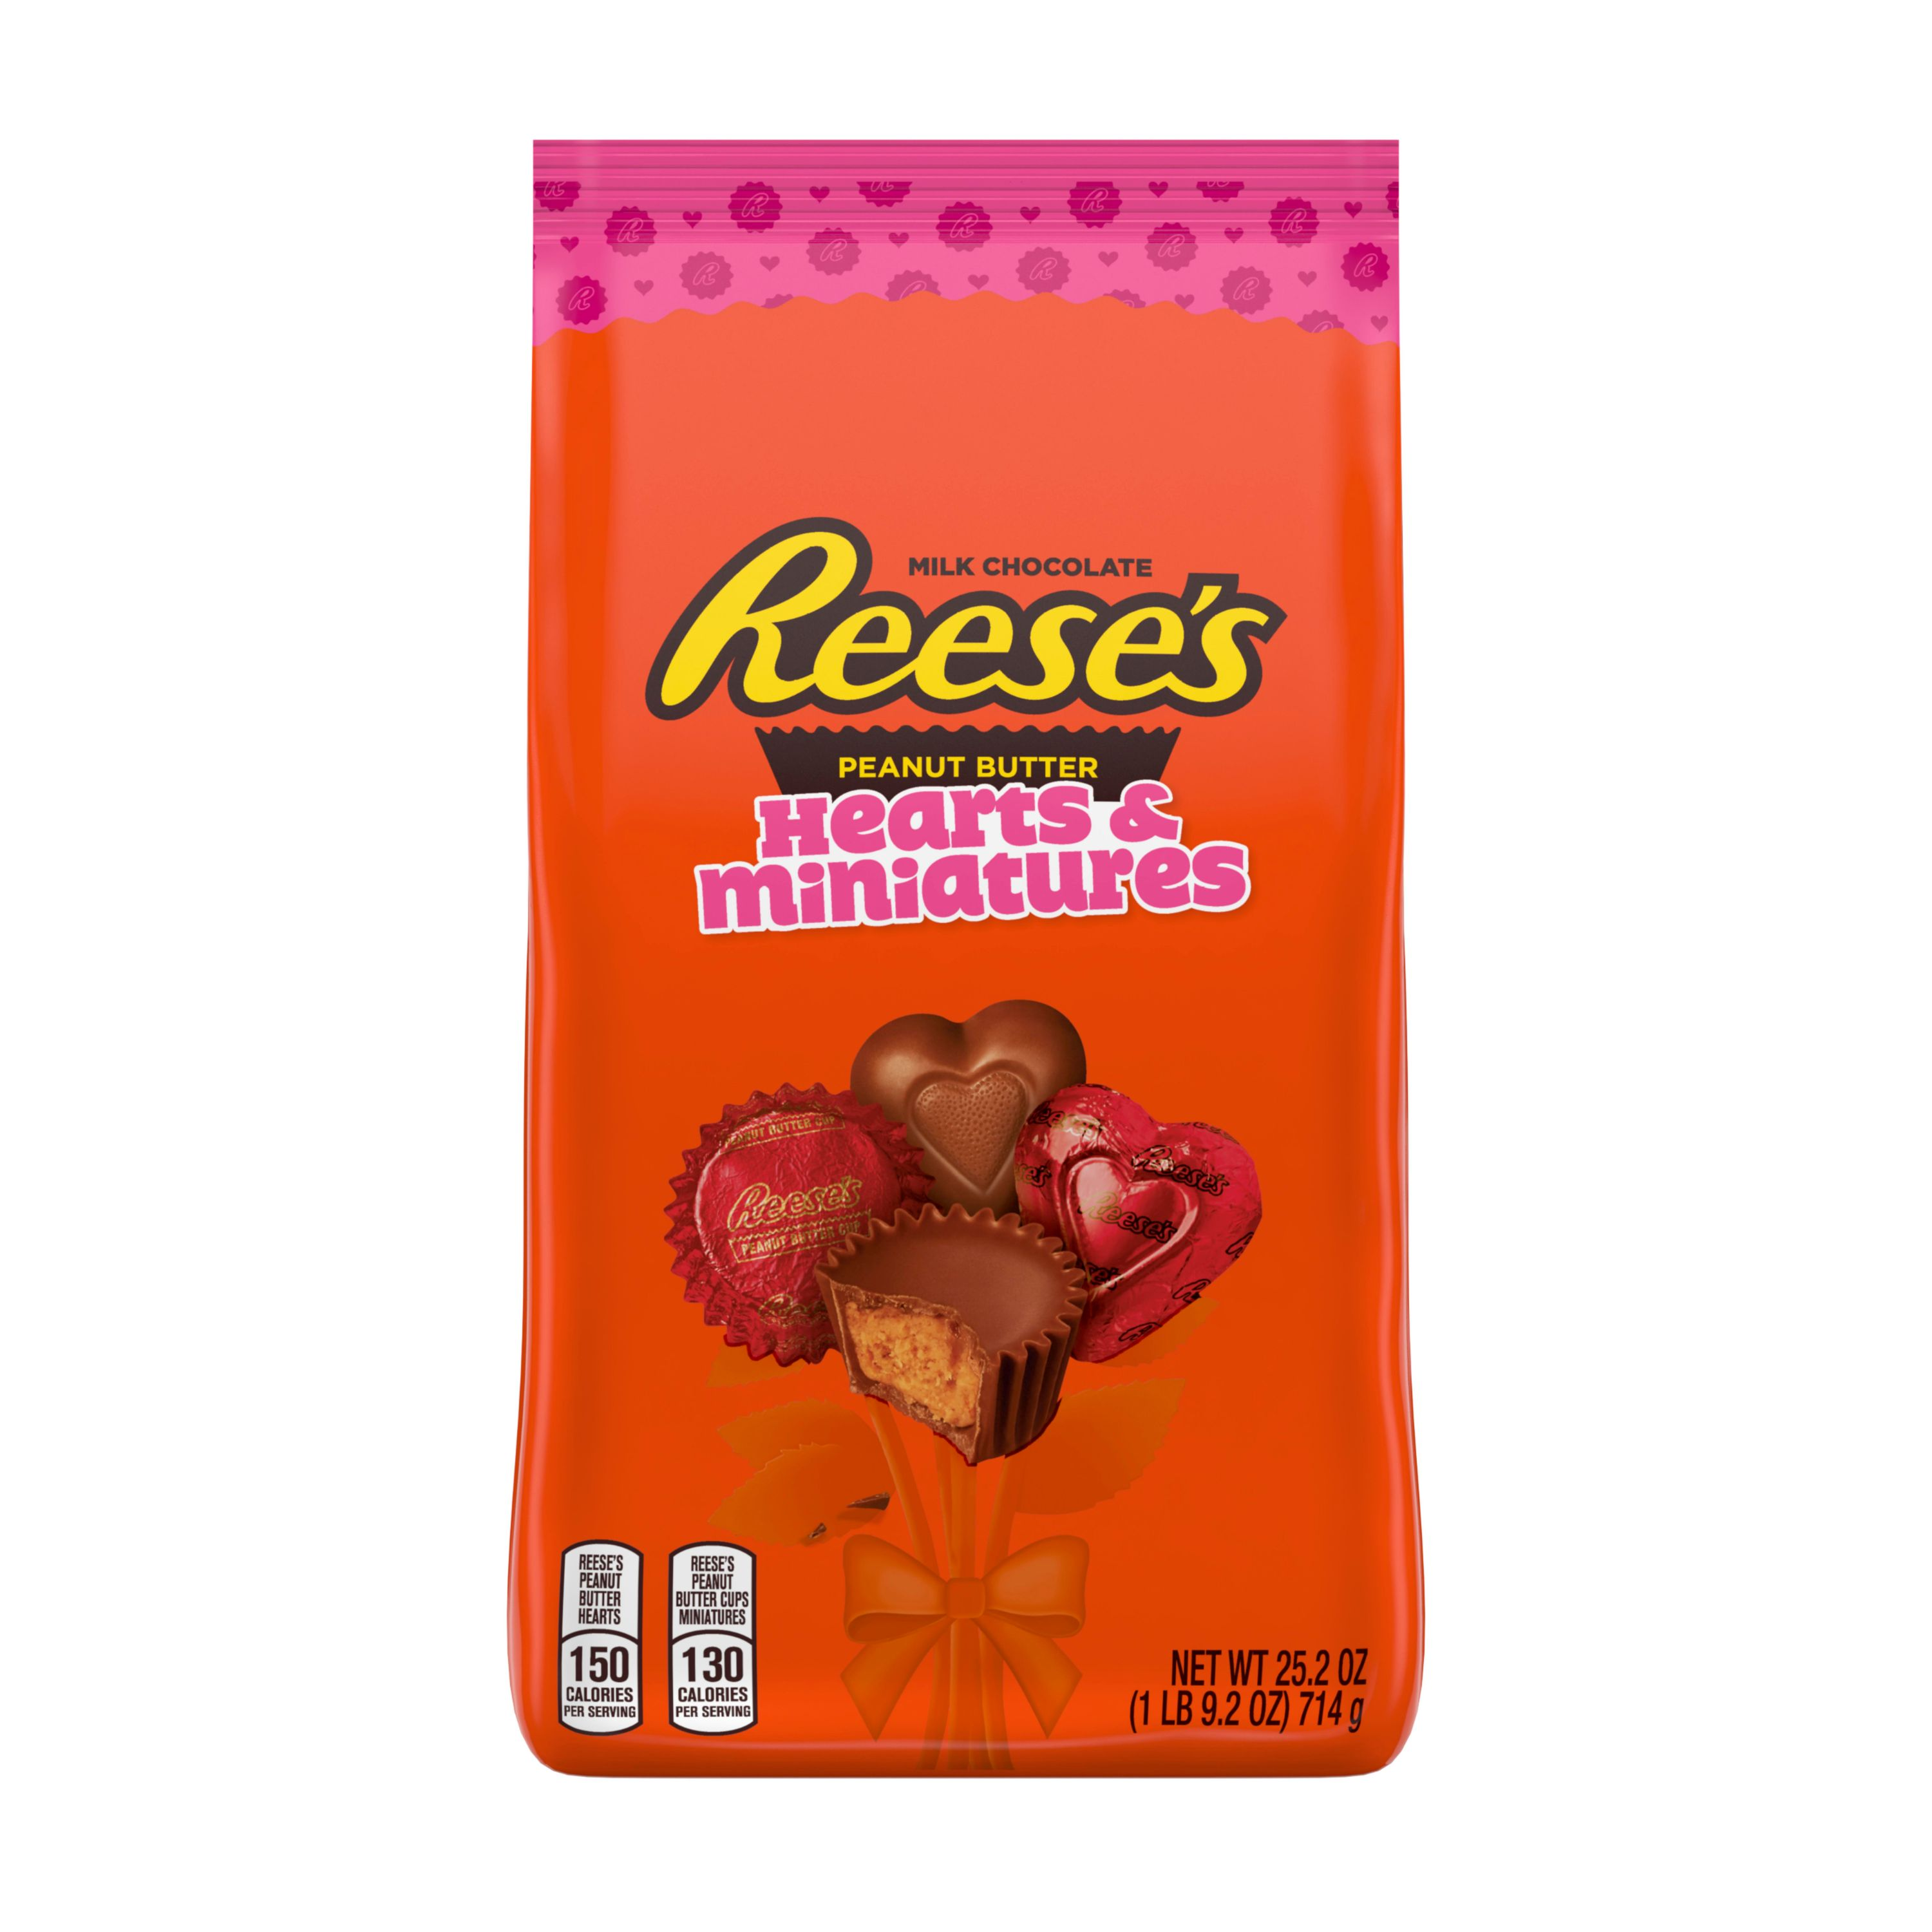 REESE'S, Hearts and Miniatures Assortment Milk Chocolate Peanut Butter Candy, Valentine's Day, 25.2 Oz., Variety Bag